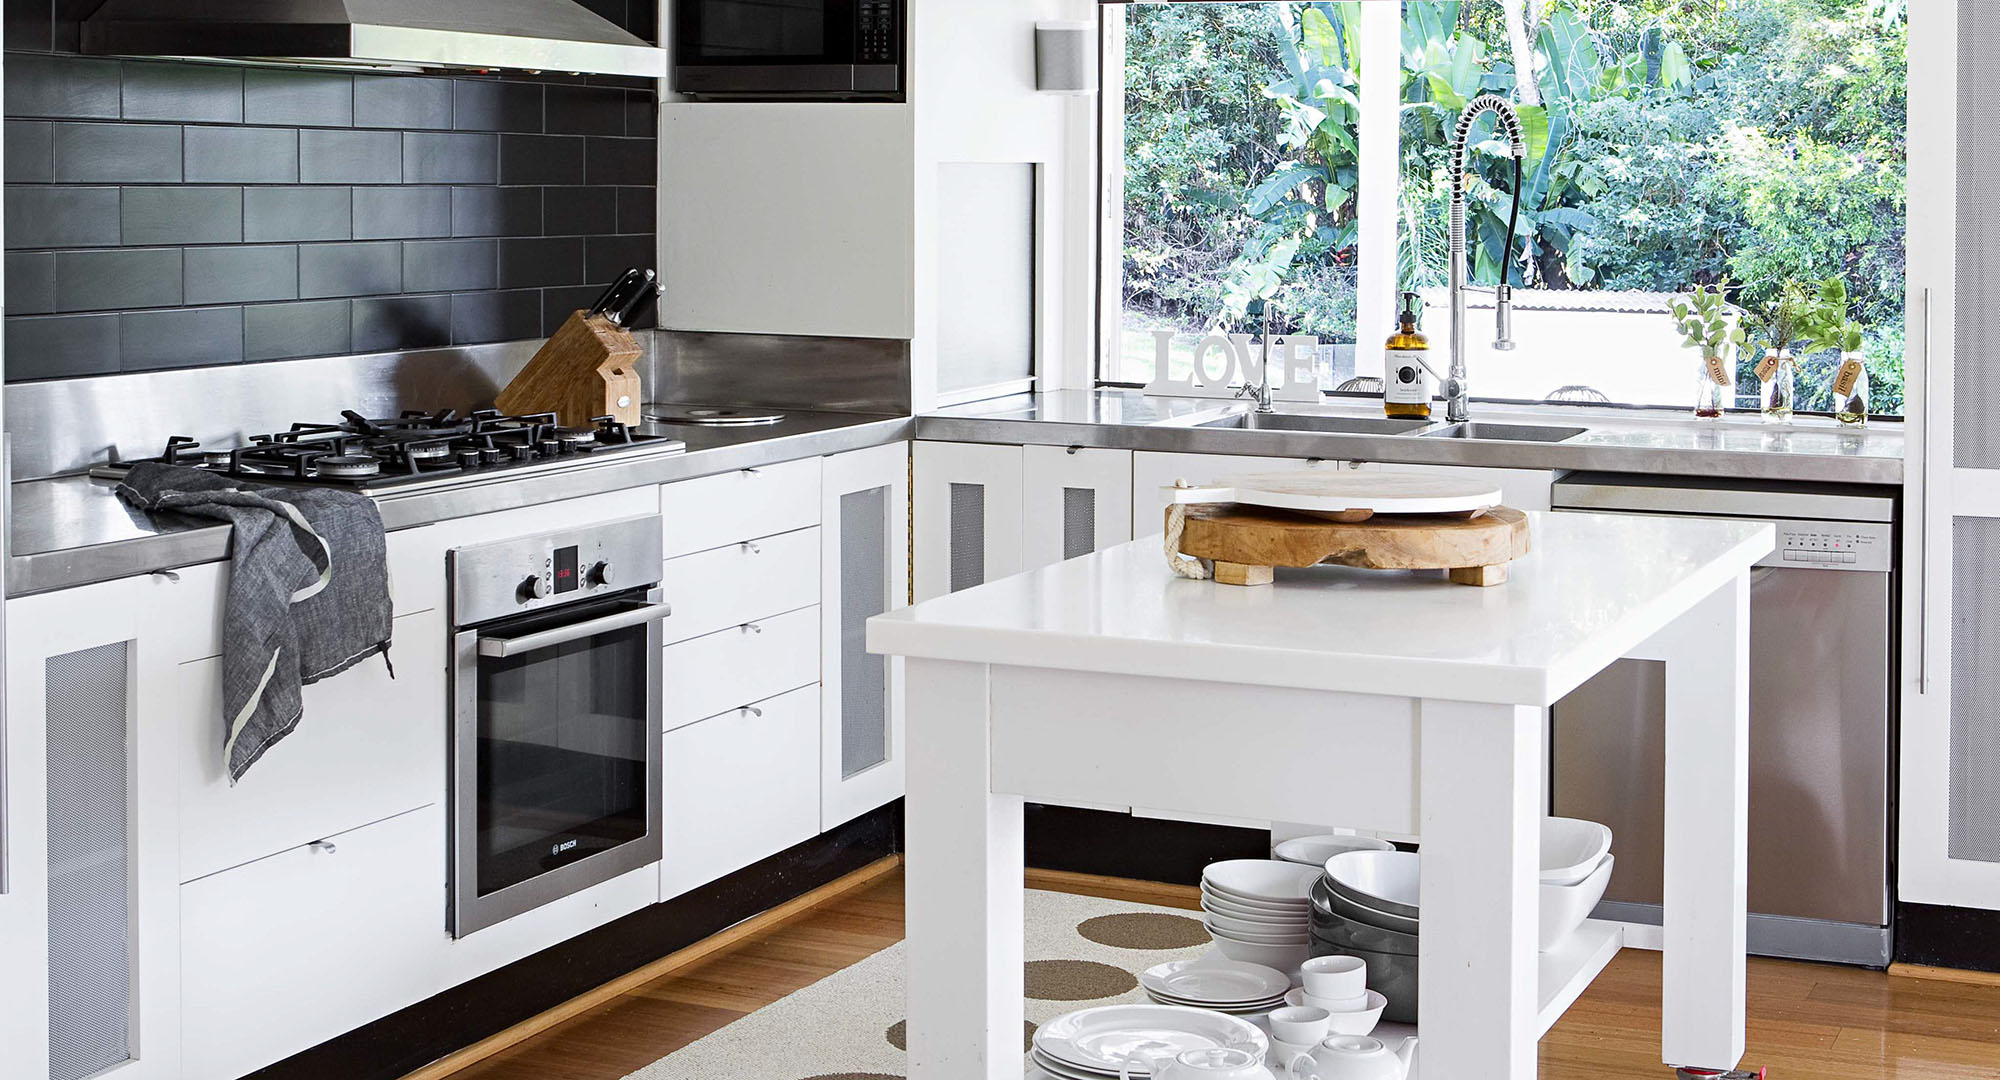 Kitchen inspiration: 5 steps to a timeless modern space | Home ...